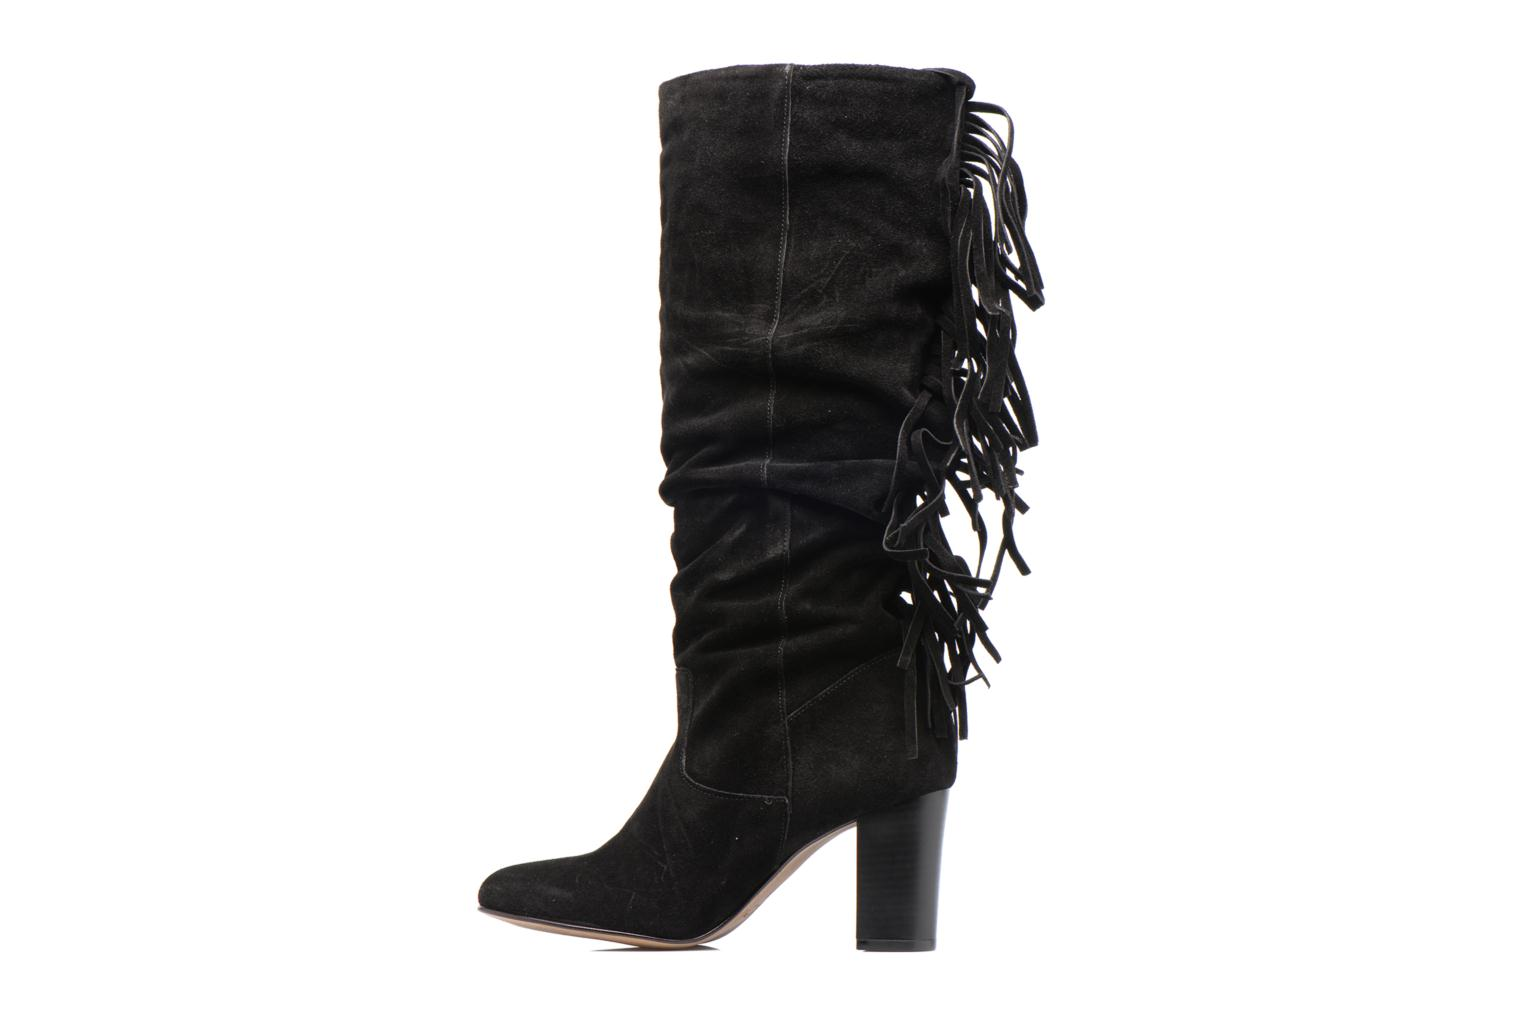 Vmmia Leather High Boot Black